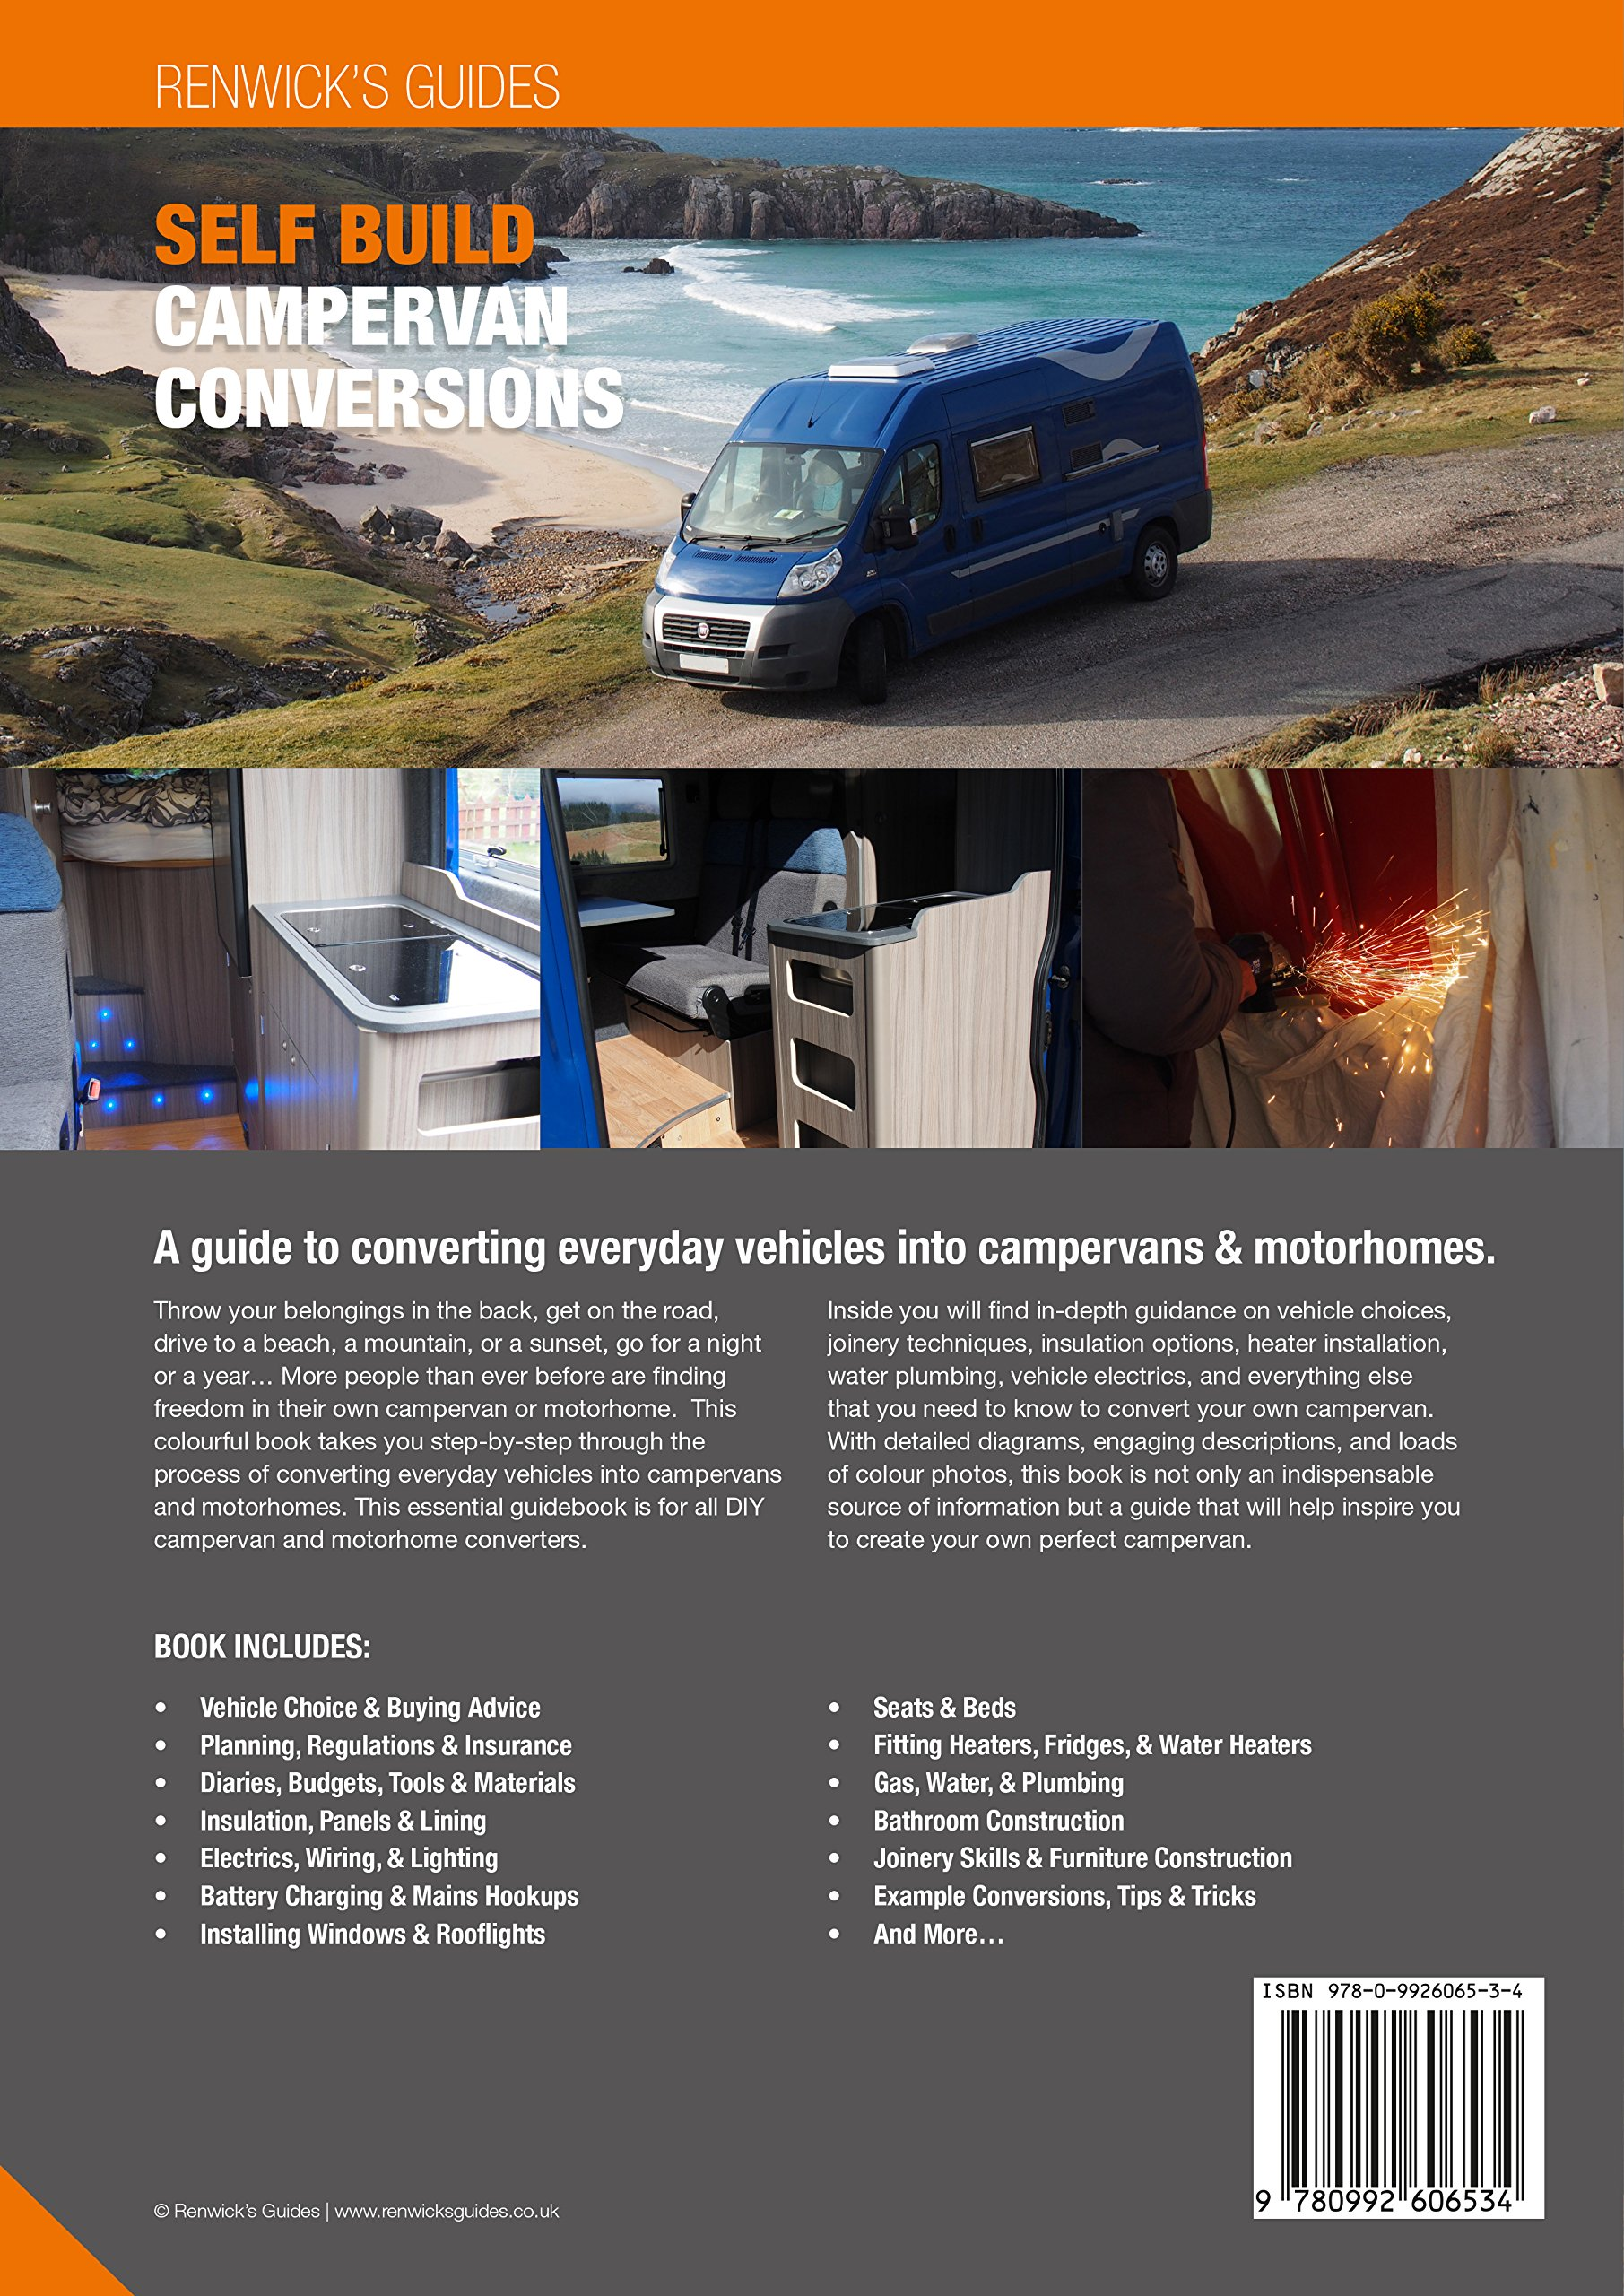 Self Build Campervan Conversions - A guide to converting